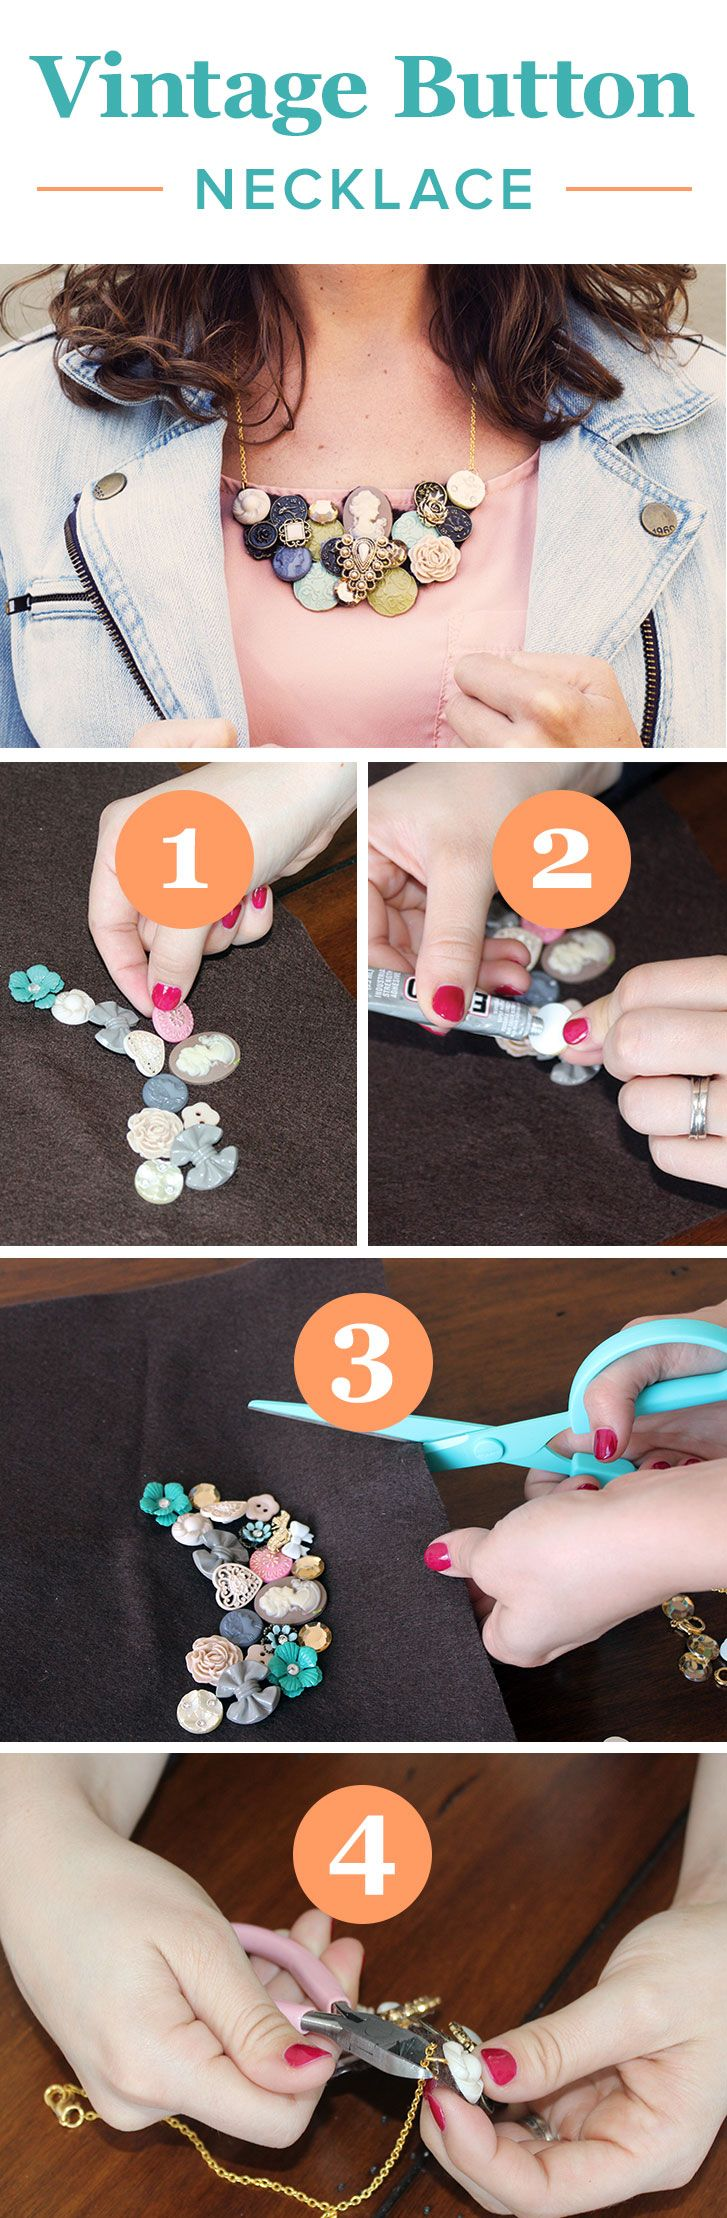 Vintage Button Necklace Project | Make This DIY